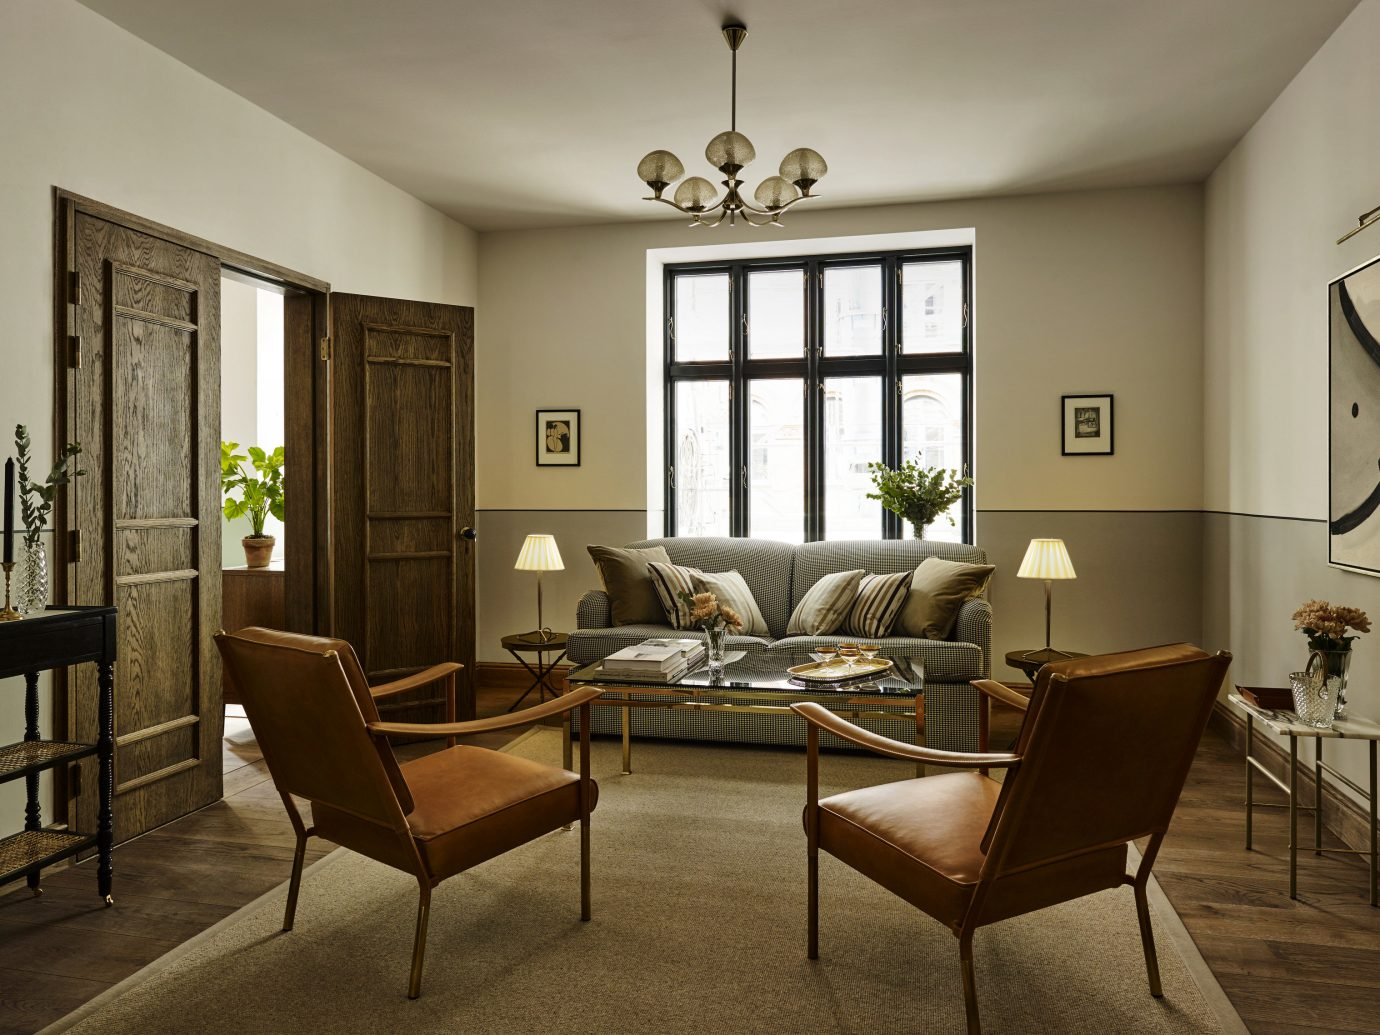 Copenhagen Denmark Design Hotels Trip Ideas indoor floor wall ceiling table room living room chair Living interior design dining room furniture window real estate home flooring interior designer hotel house area several